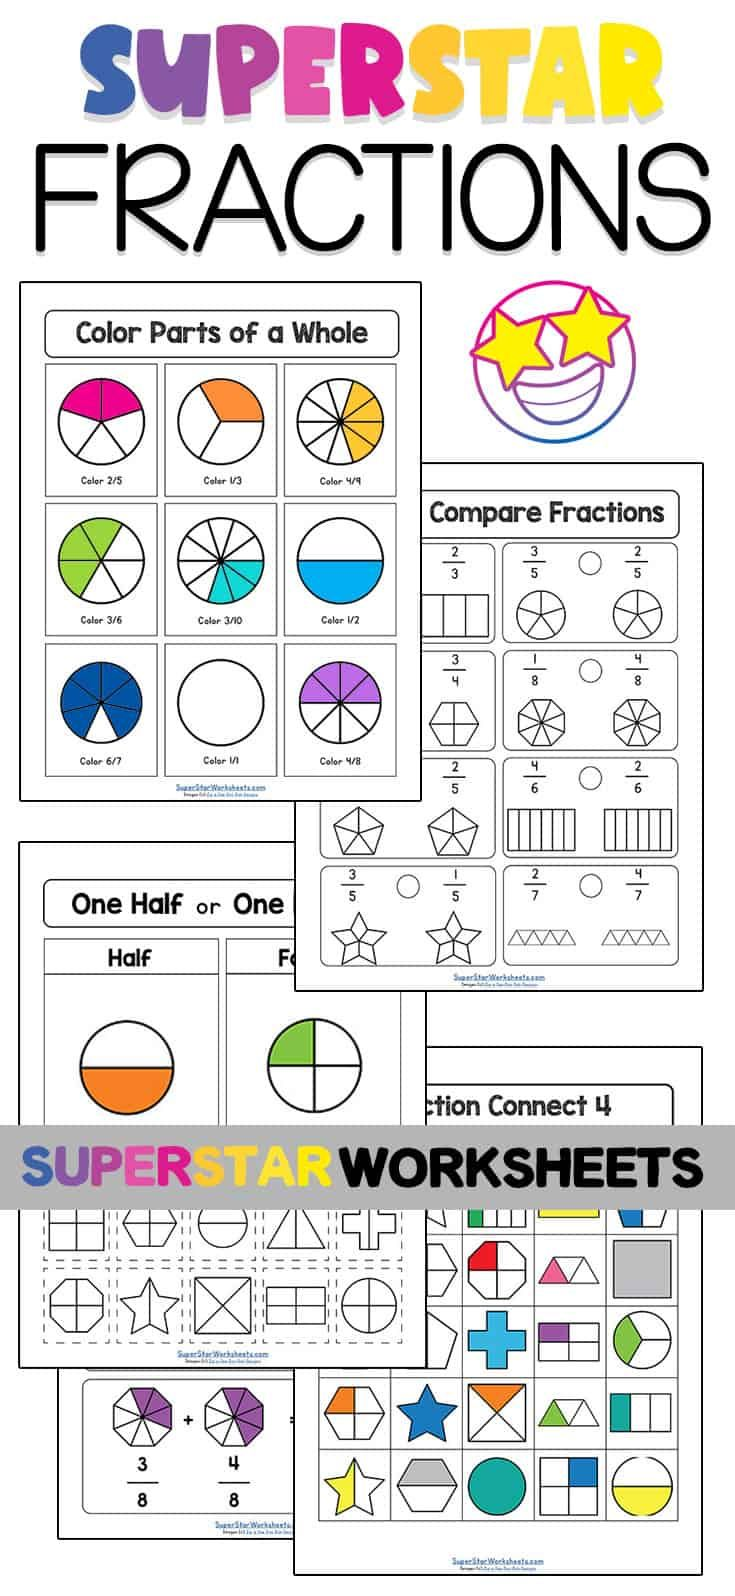 Free Fractions Worksheets From Superstarworksheets Com You Ll Find Equal And Unequal Parts Addition An Fractions Worksheets Fractions Free Fraction Worksheets [ 1596 x 735 Pixel ]